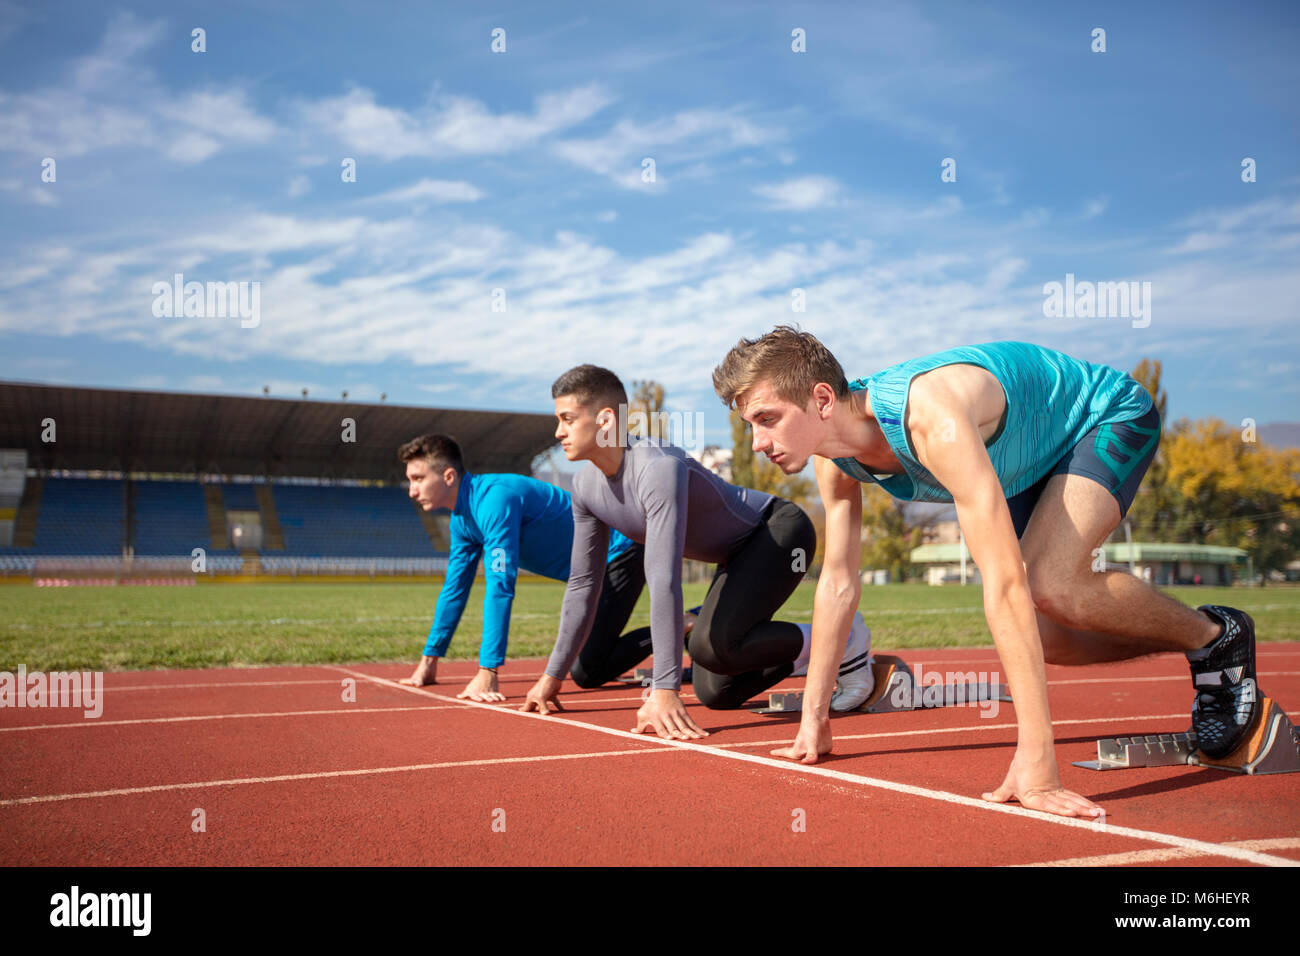 Athletes at the sprint start line in track and field - Stock Image